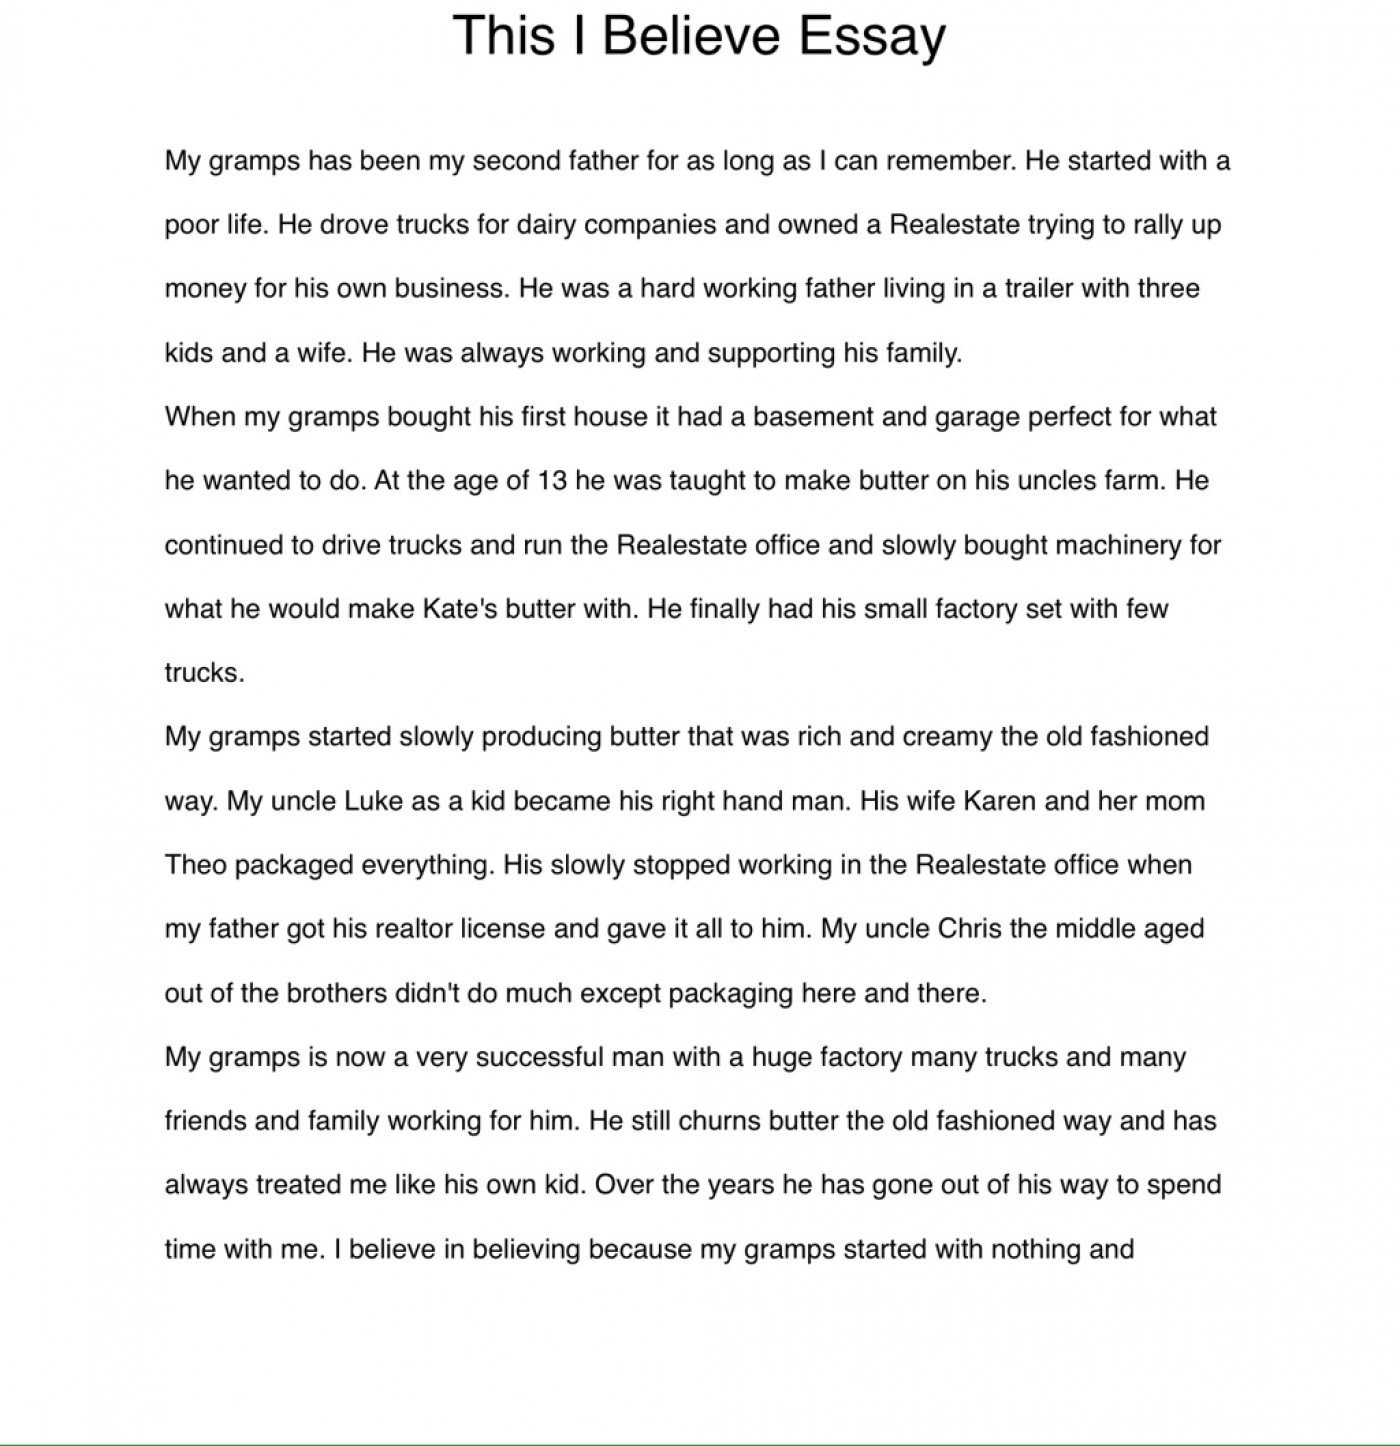 003 Essay Example I Believe Examples Phenomenal This Personal College 1400